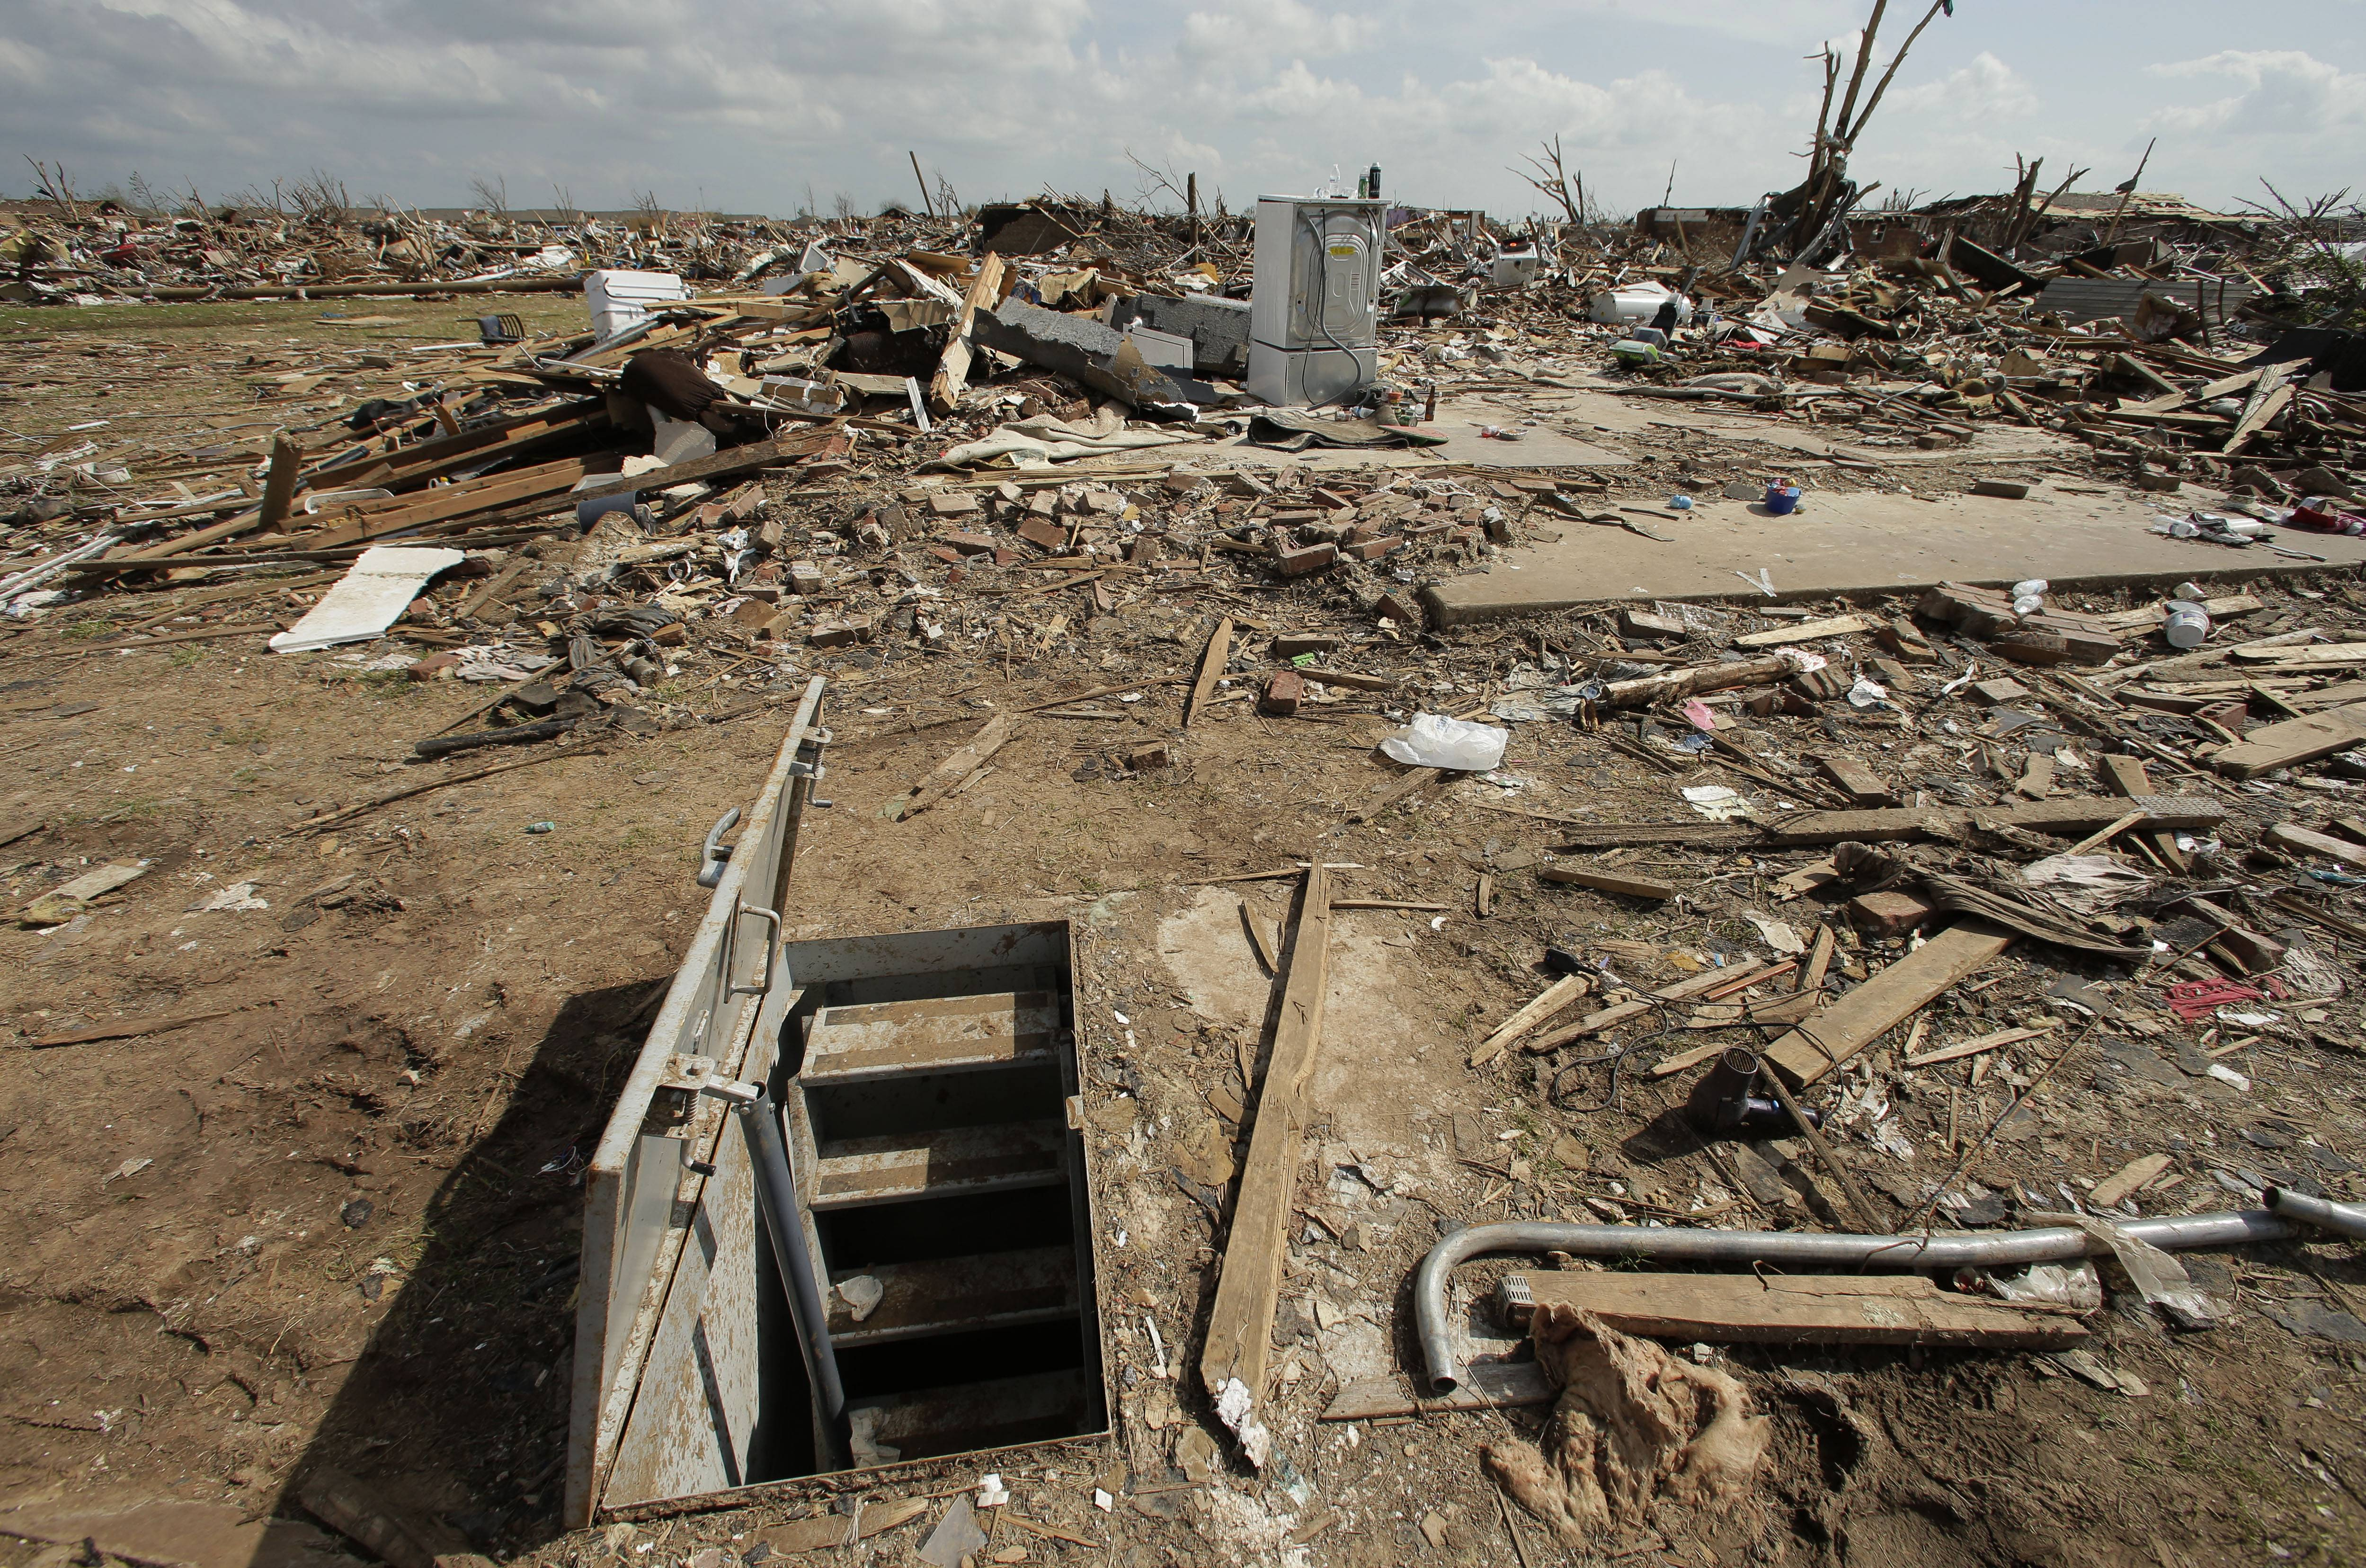 In this May 26, 2013, file photo, an underground shelter is seen near tornado rubble in Moore, Okla. The deadly tornadoes that killed more than 30 people scared Oklahomans in a way that previous storms had not, moving them to add tornado shelters or reinforced safe rooms to their homes.